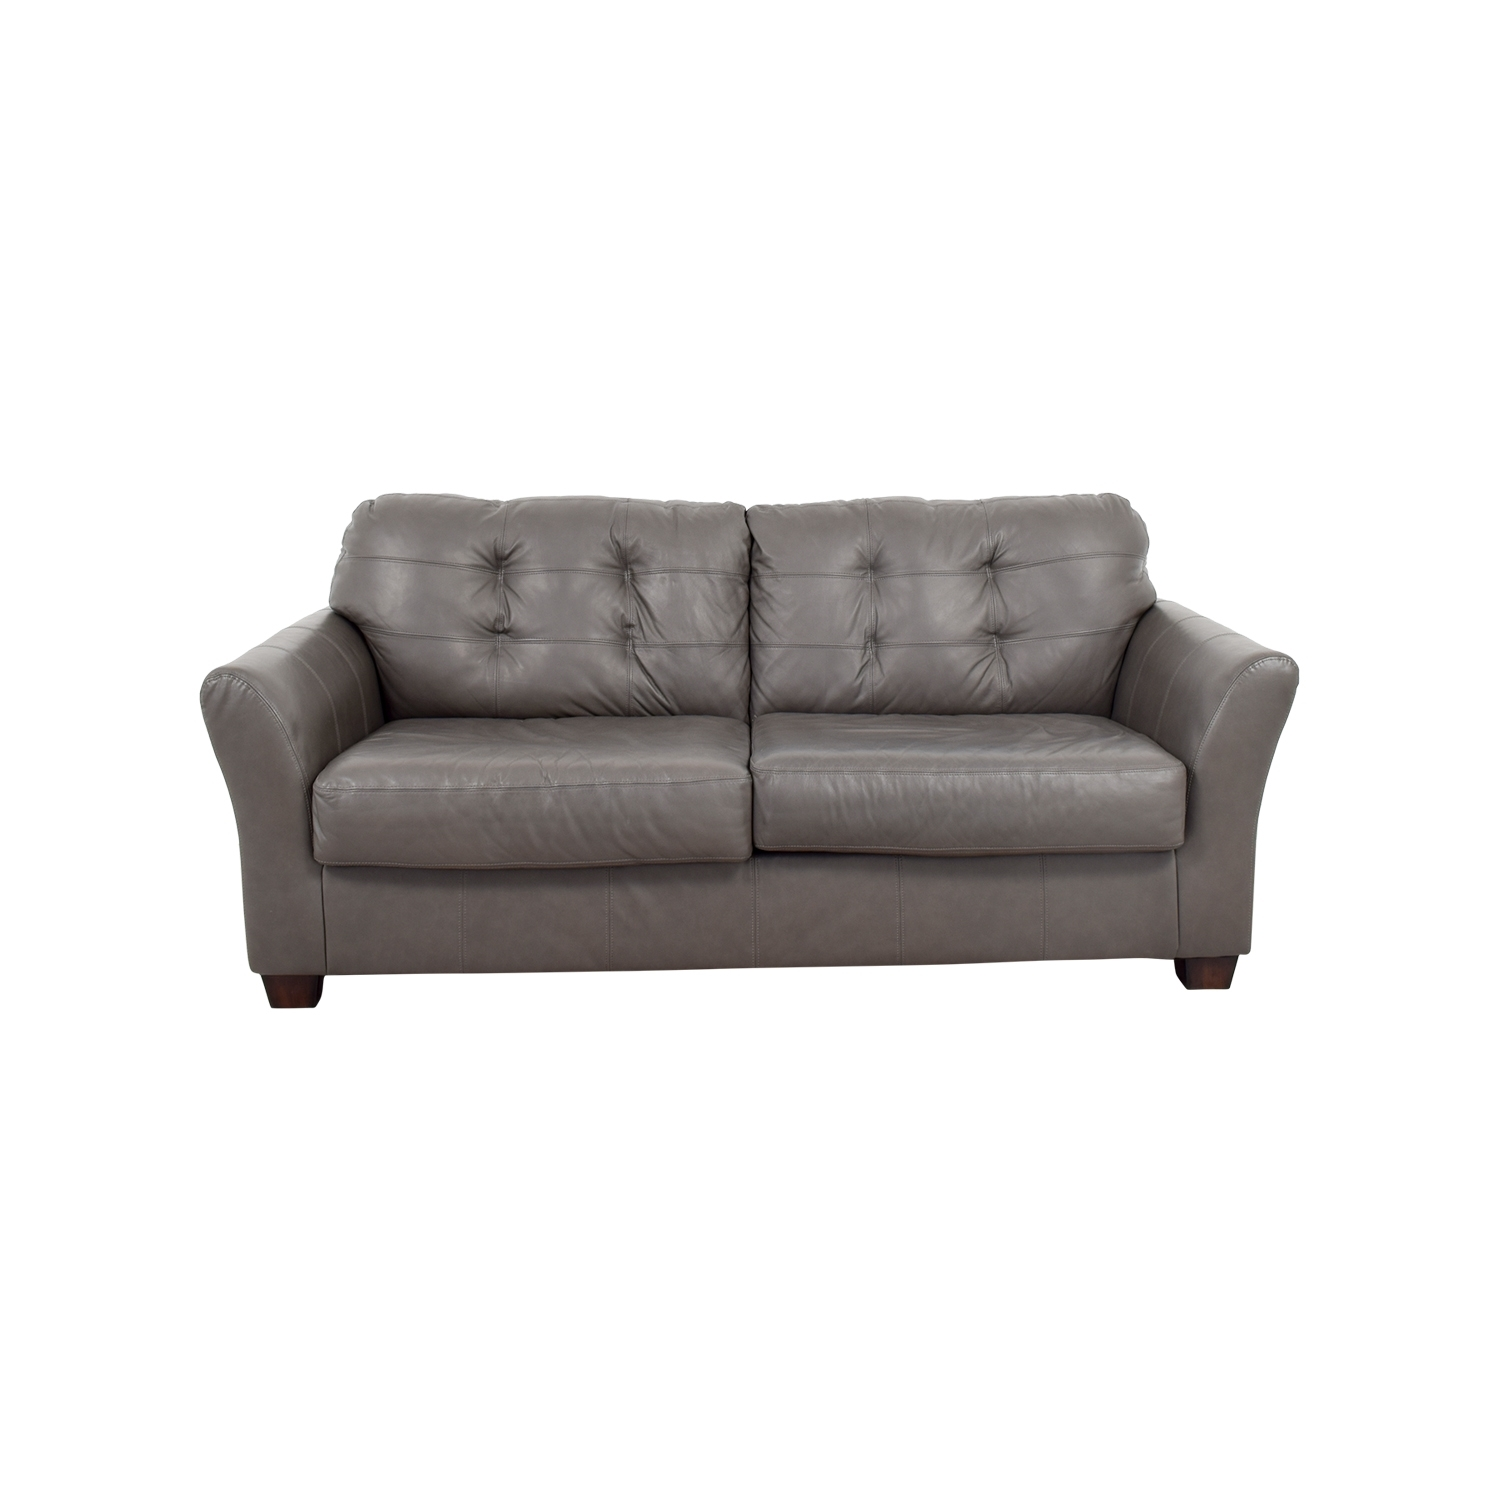 66% Off – Ashley Furniture Ashley Furniture Gray Tufted Sofa / Sofas For Ashley Tufted Sofas (Photo 8 of 10)